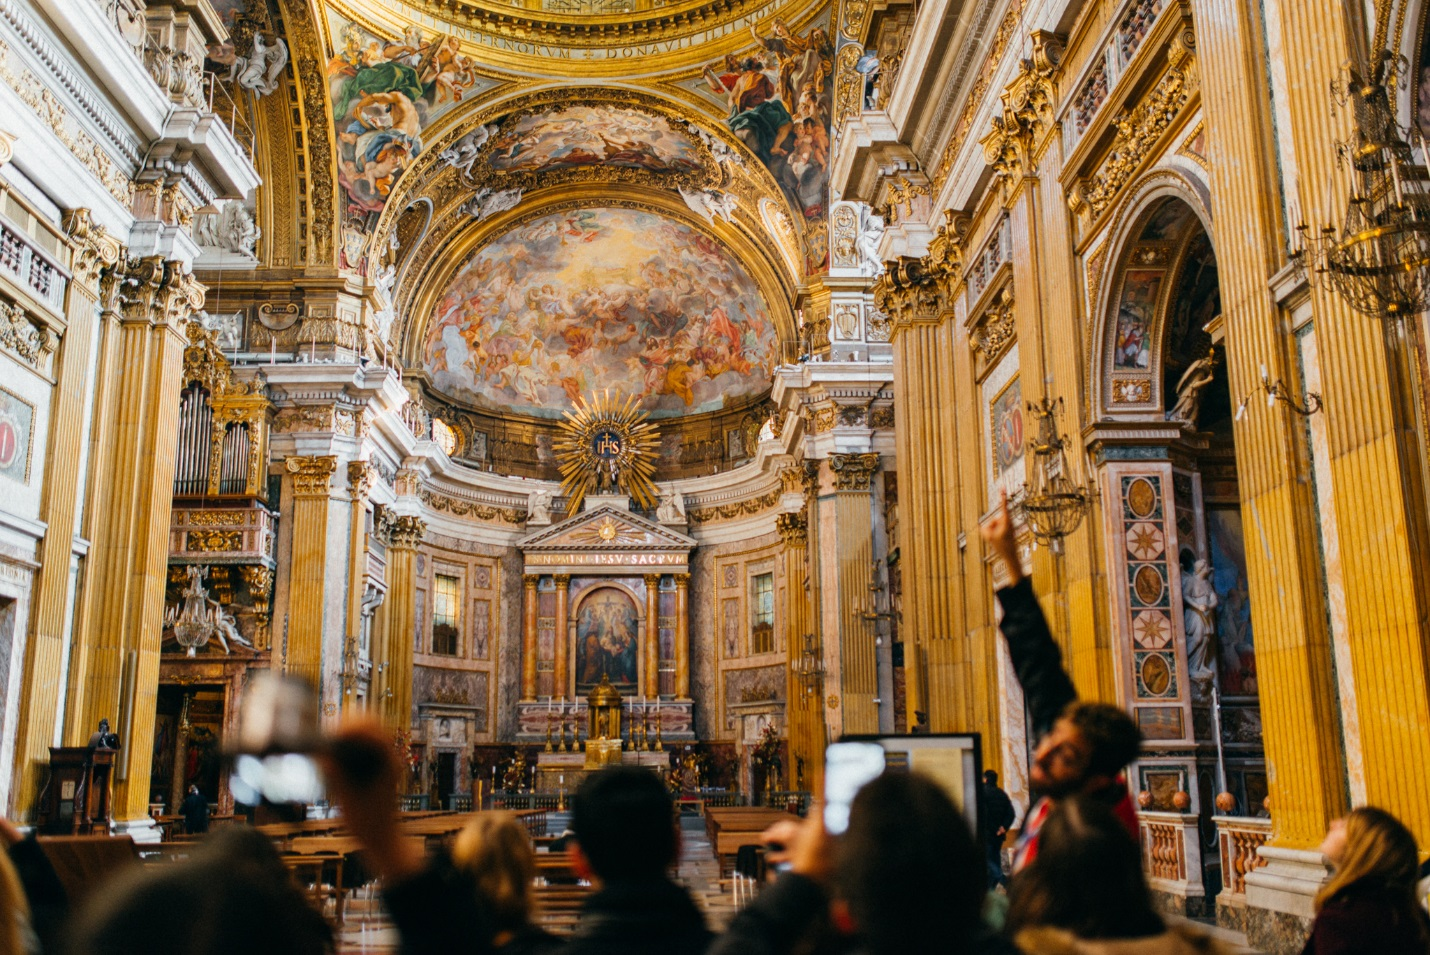 On-site classes give students a closer look at iconic Italian artwork